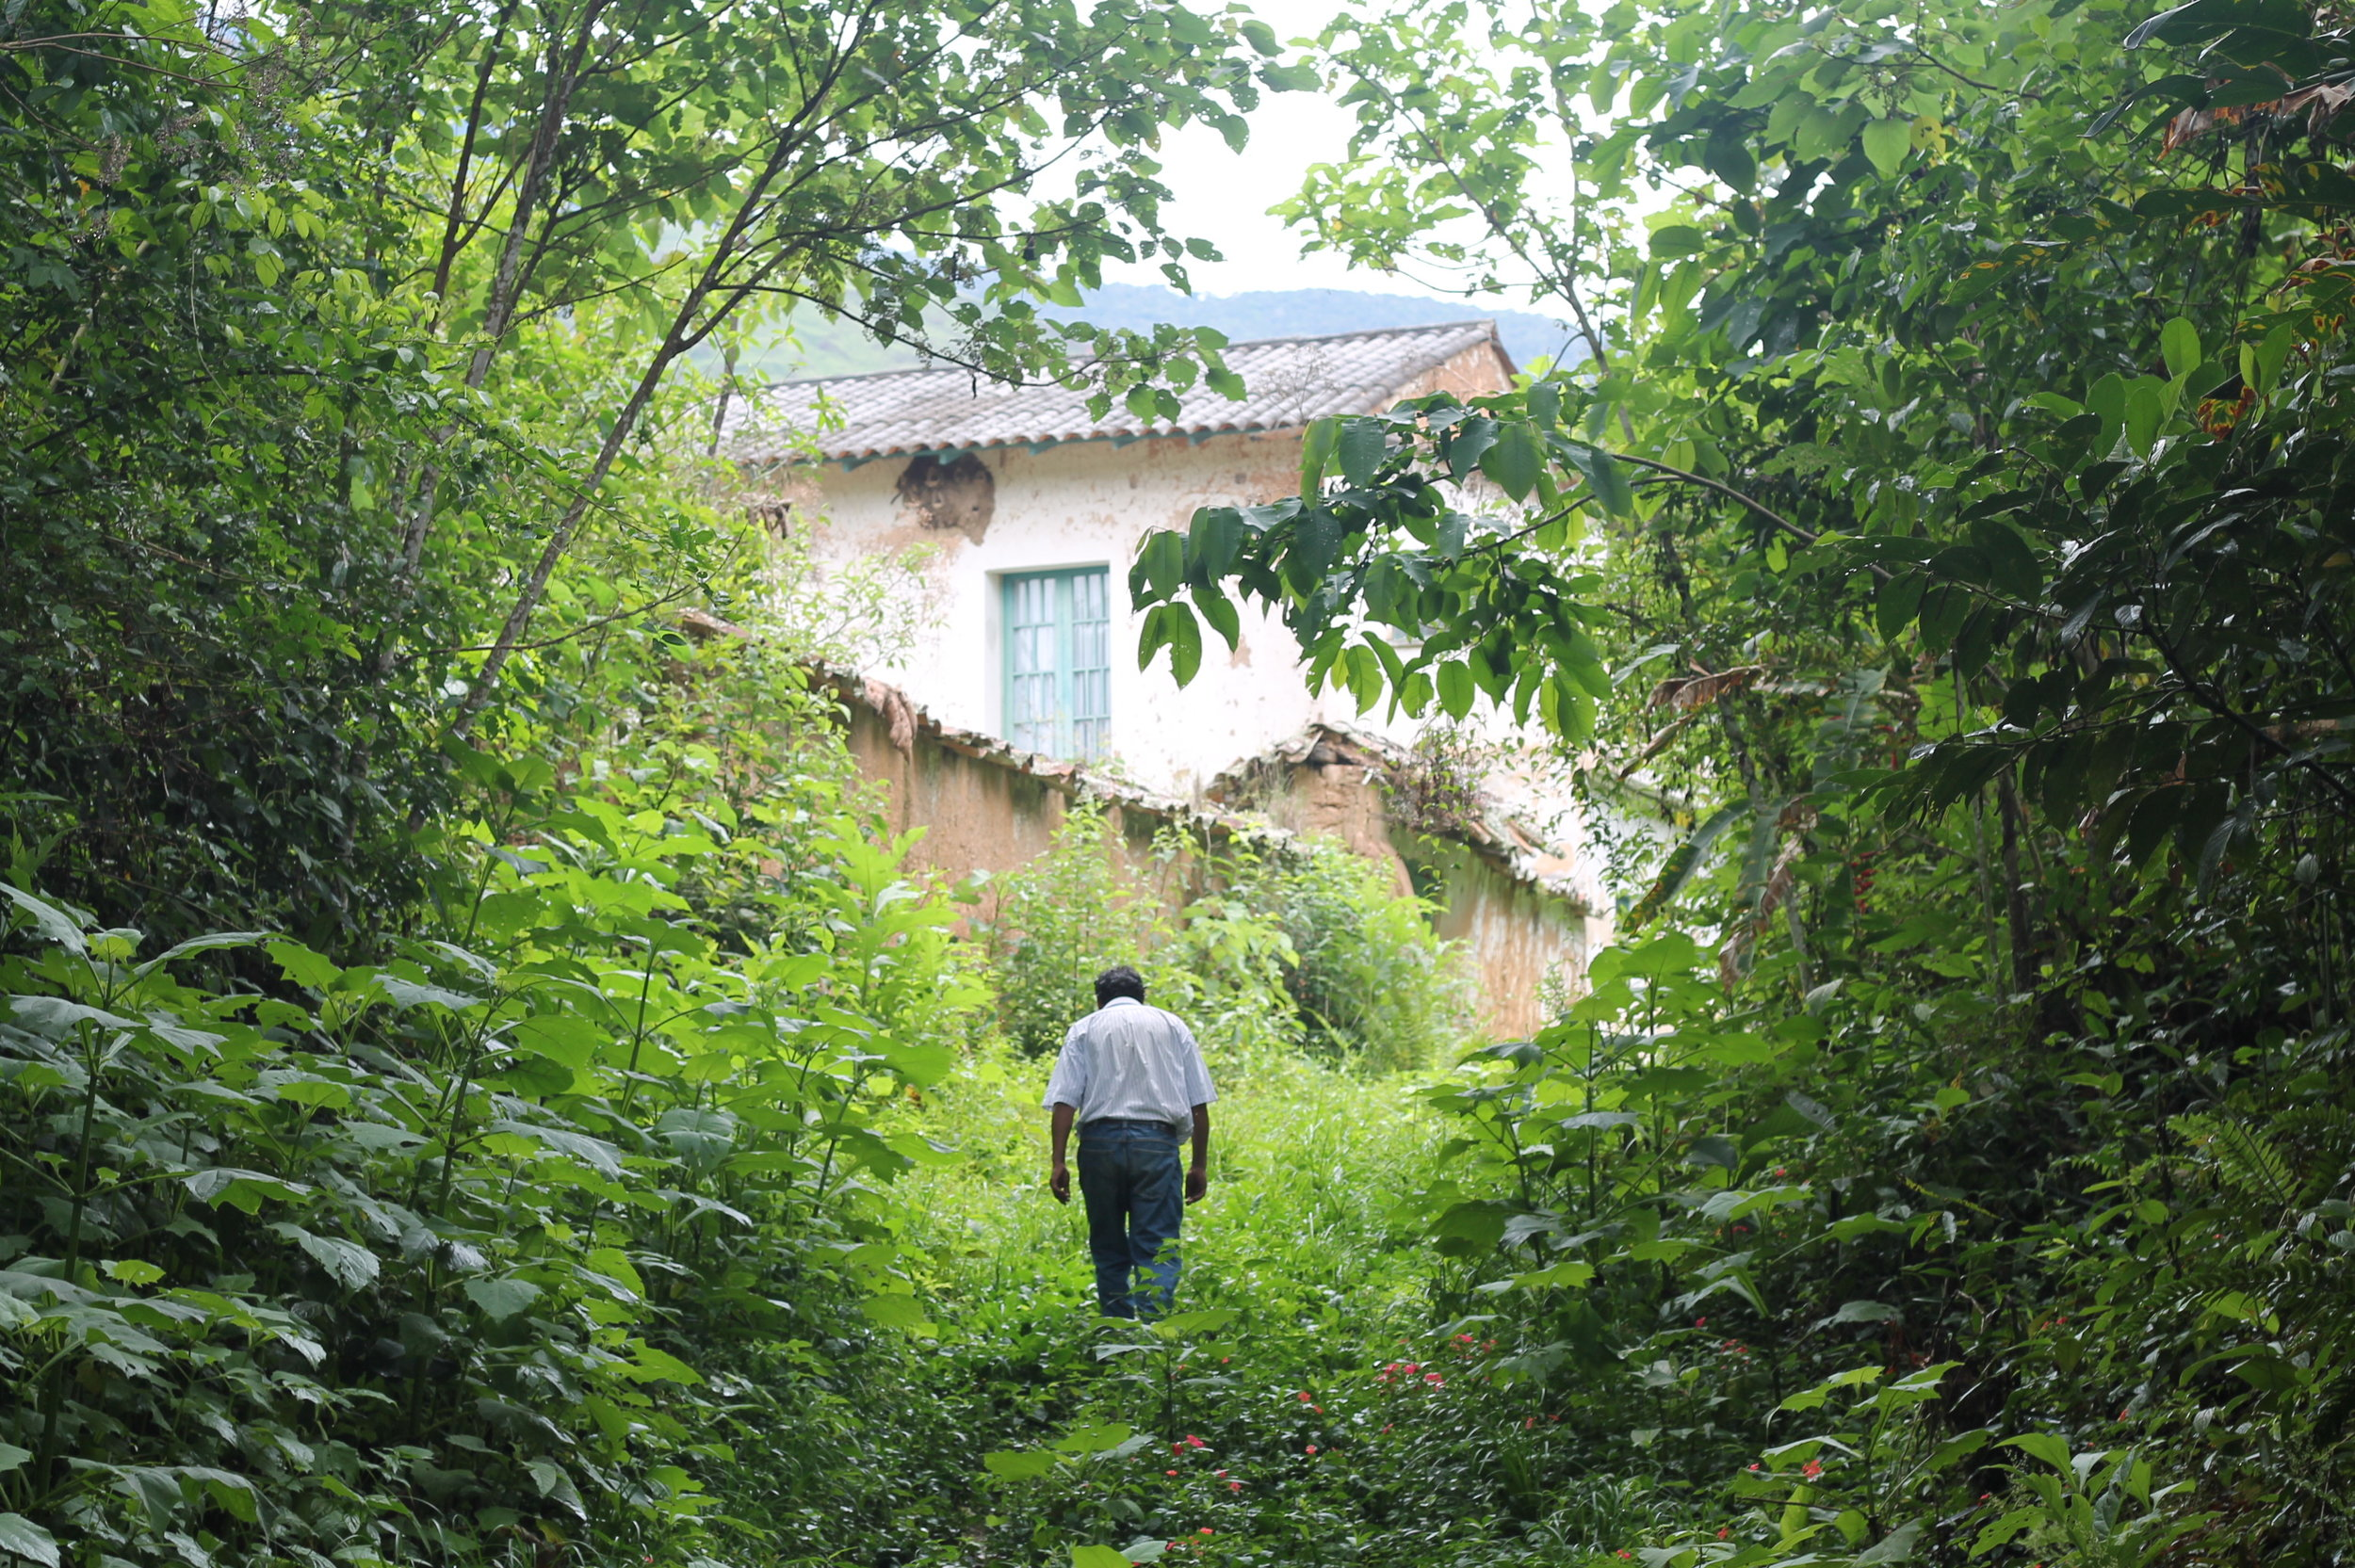 A local walks past the old hacienda at Mururata.JPG